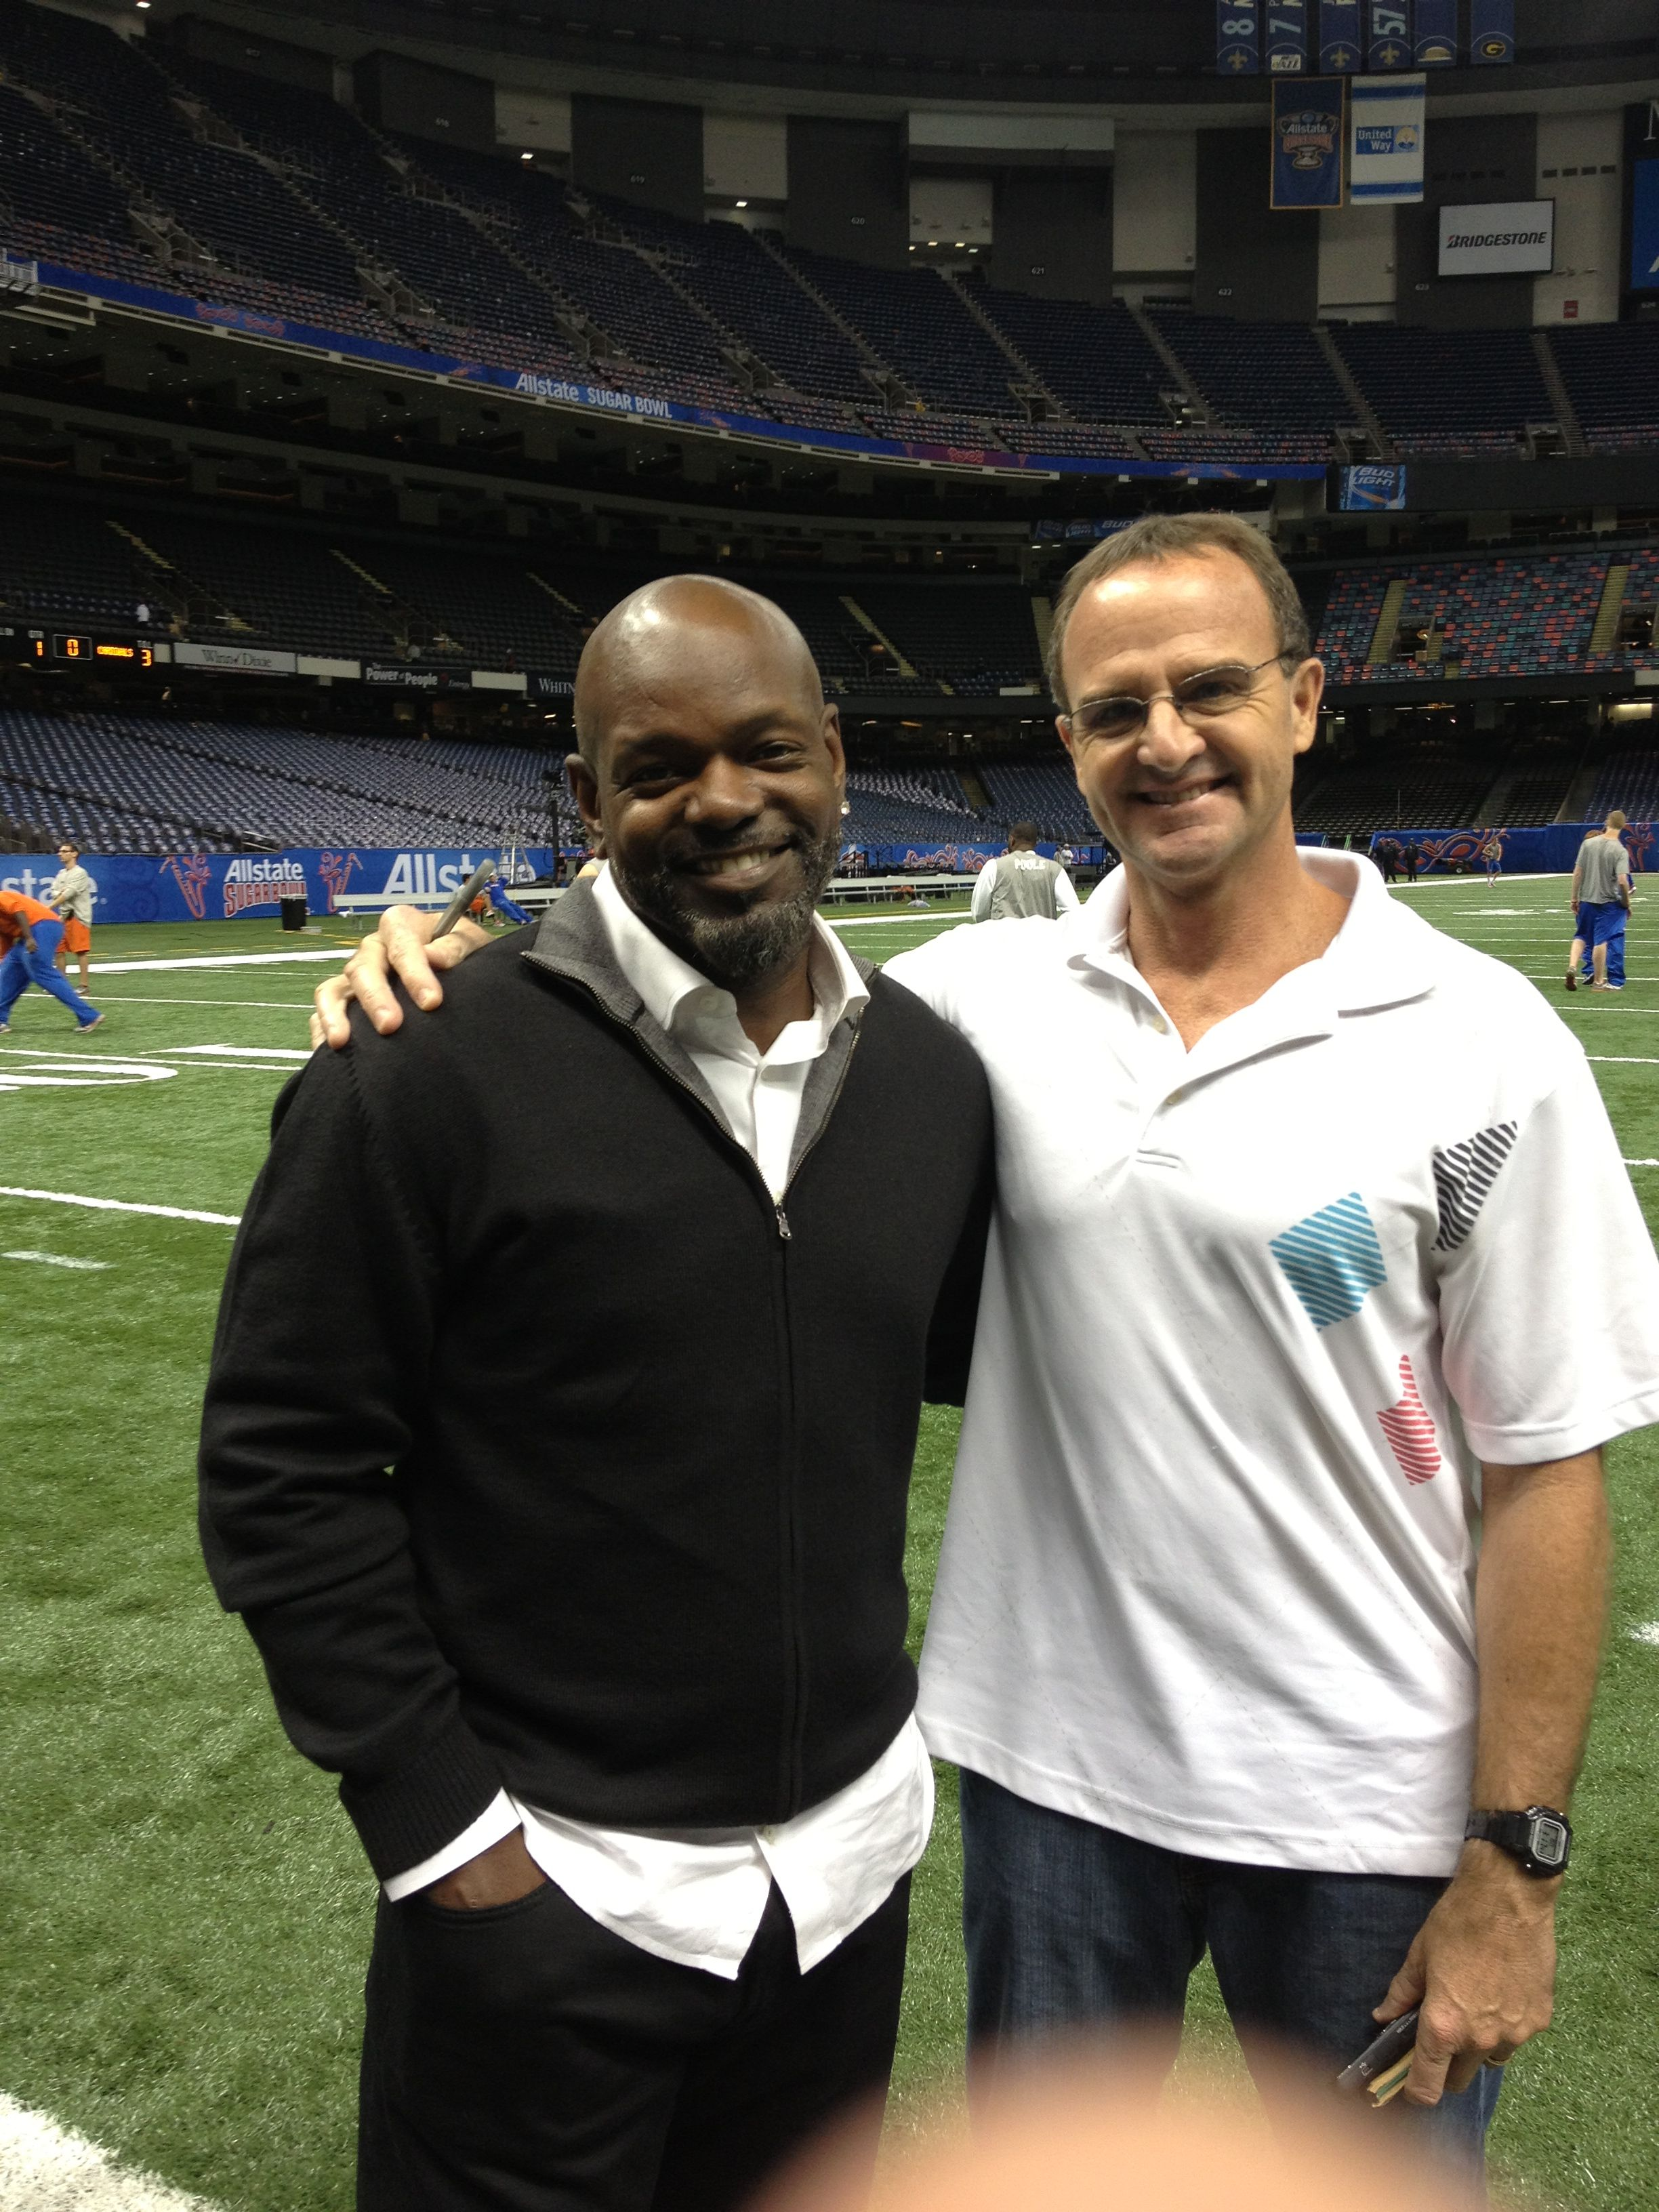 Emmitt and me